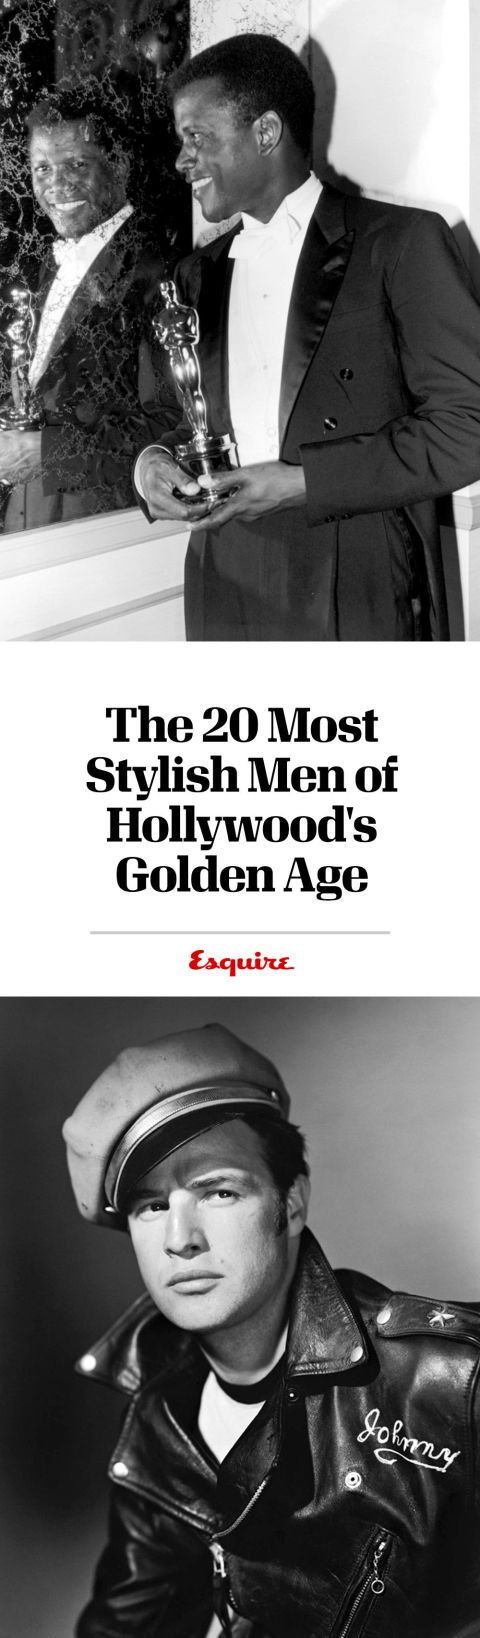 The best-dressed men to ever grace the silver screen